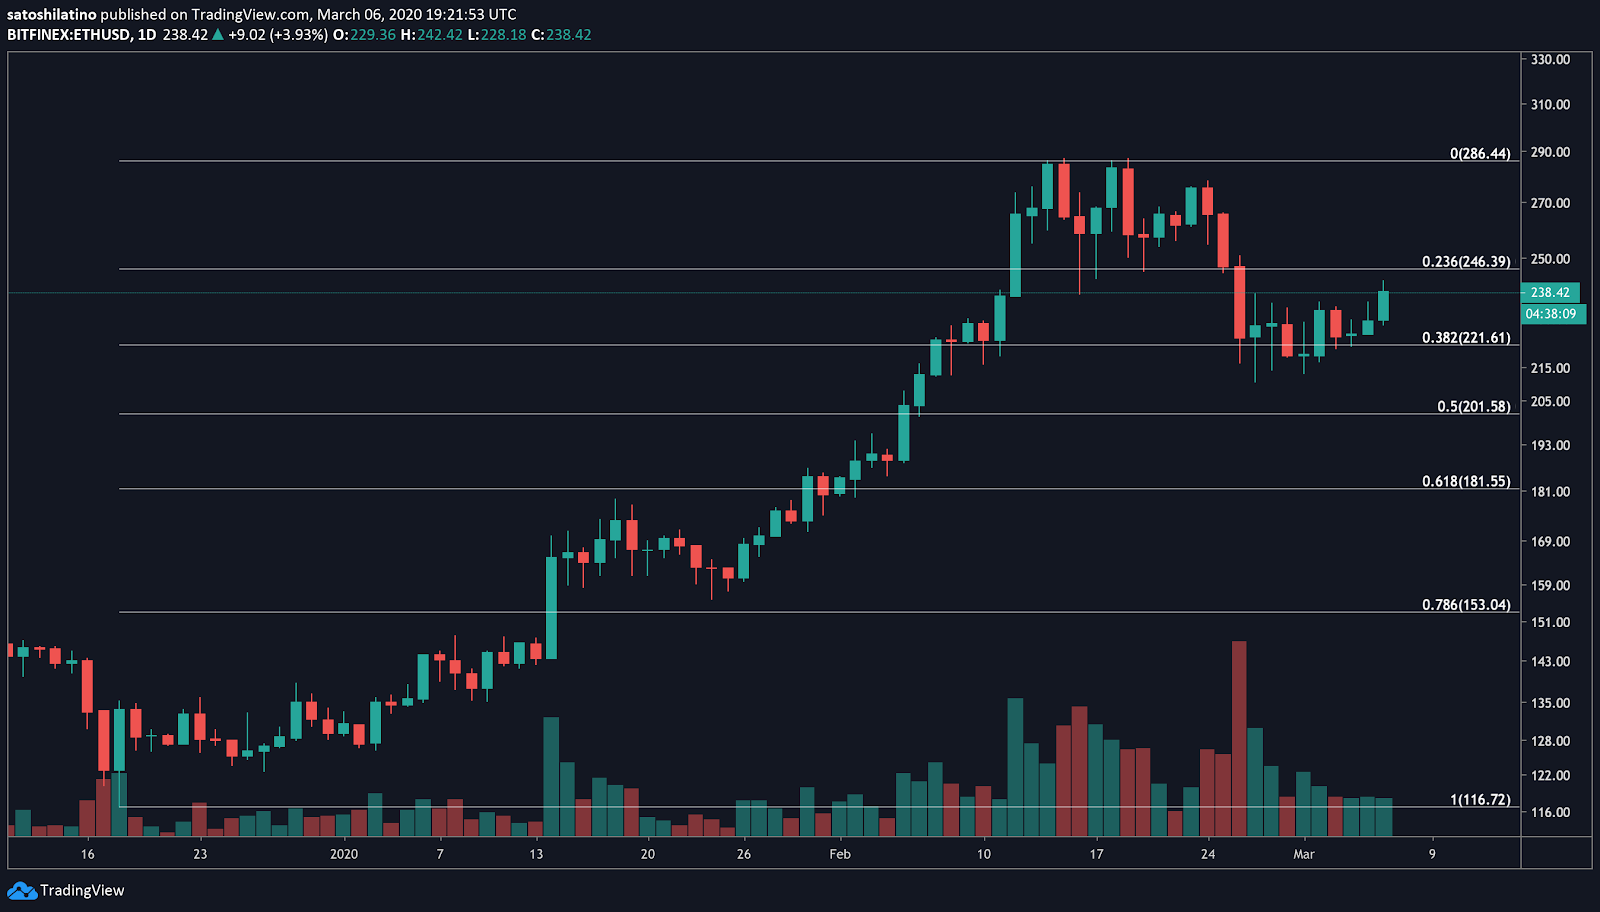 XRP / USD price chart by TradingView